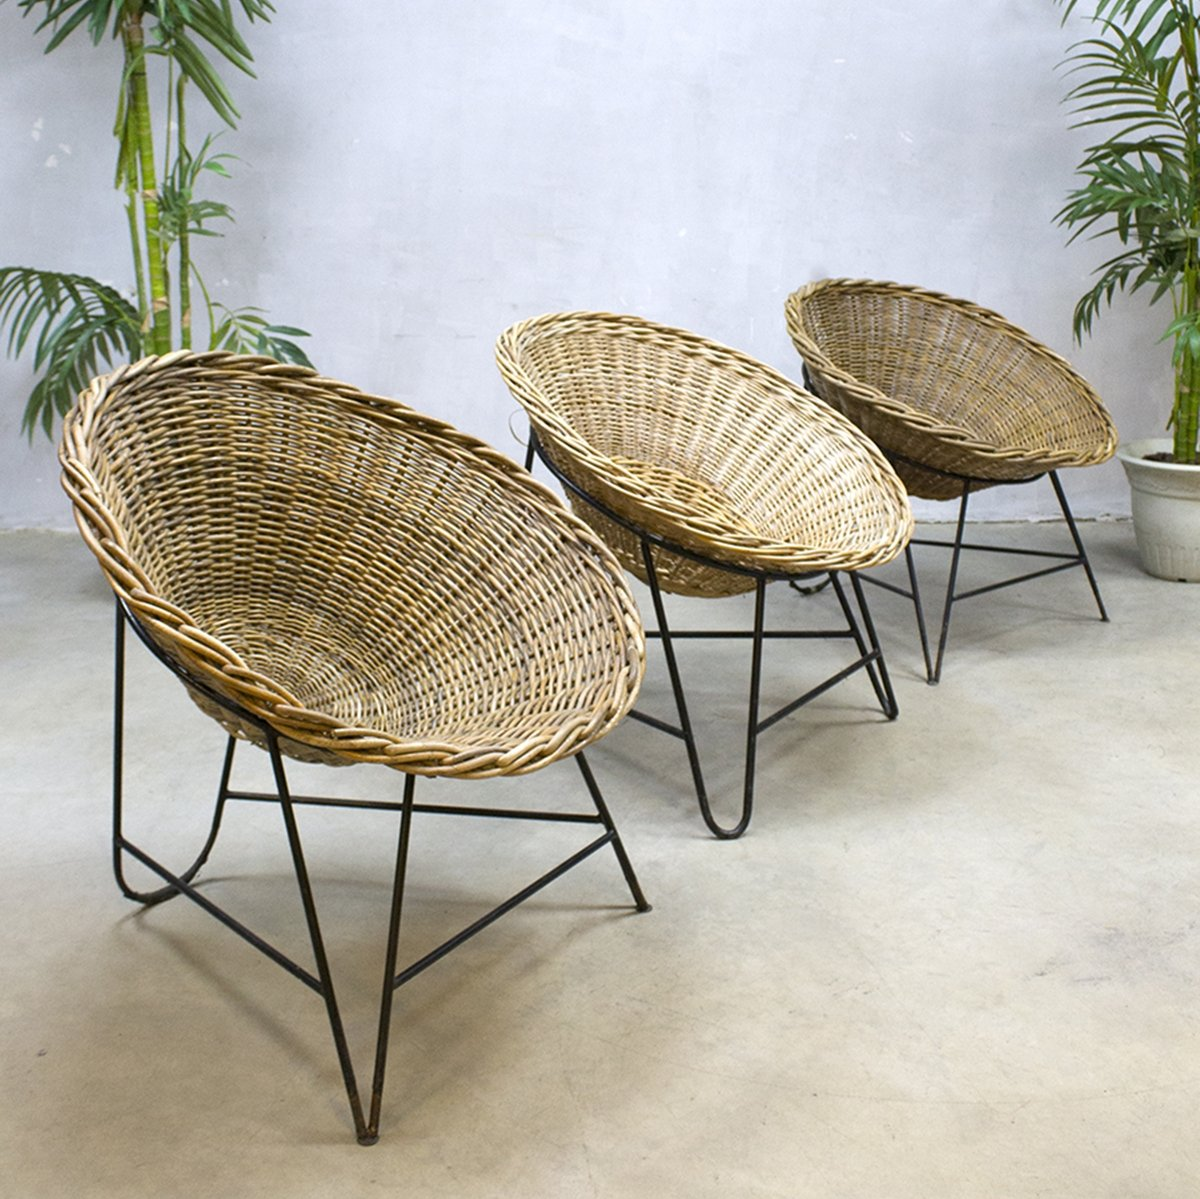 2 X Rattan Lounge Chair, 1950s